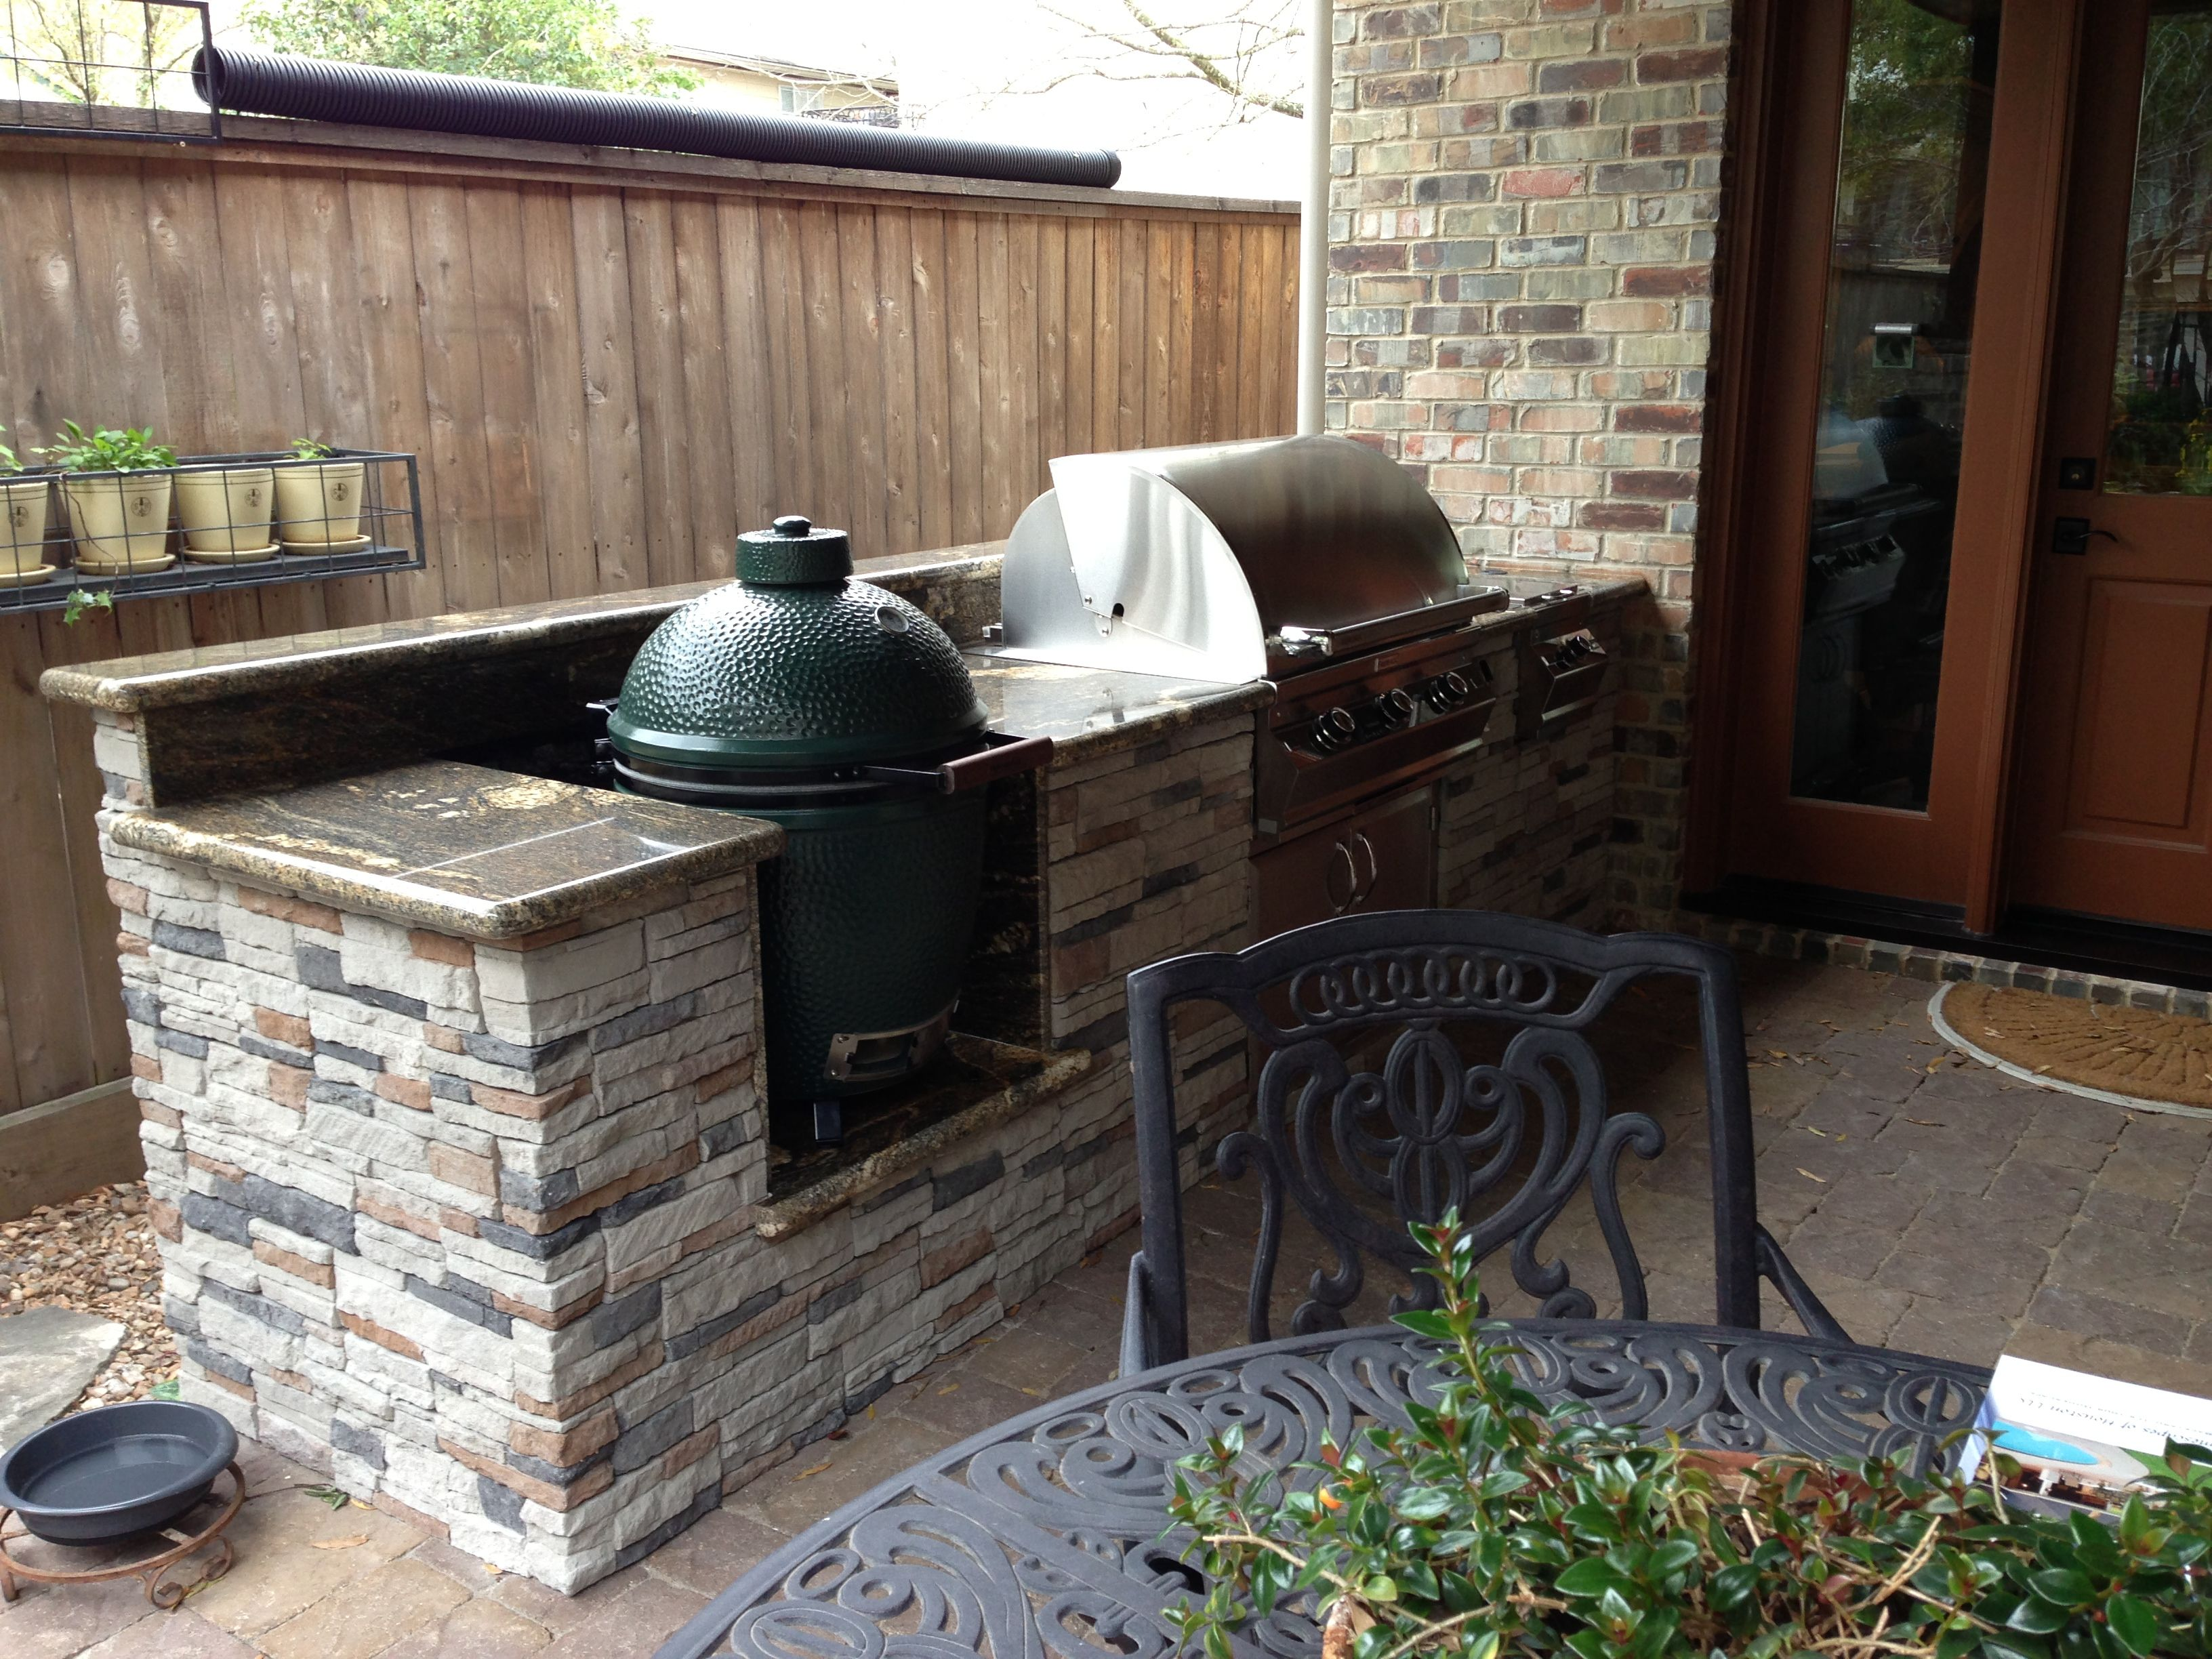 Green Egg Built Into Outdoor